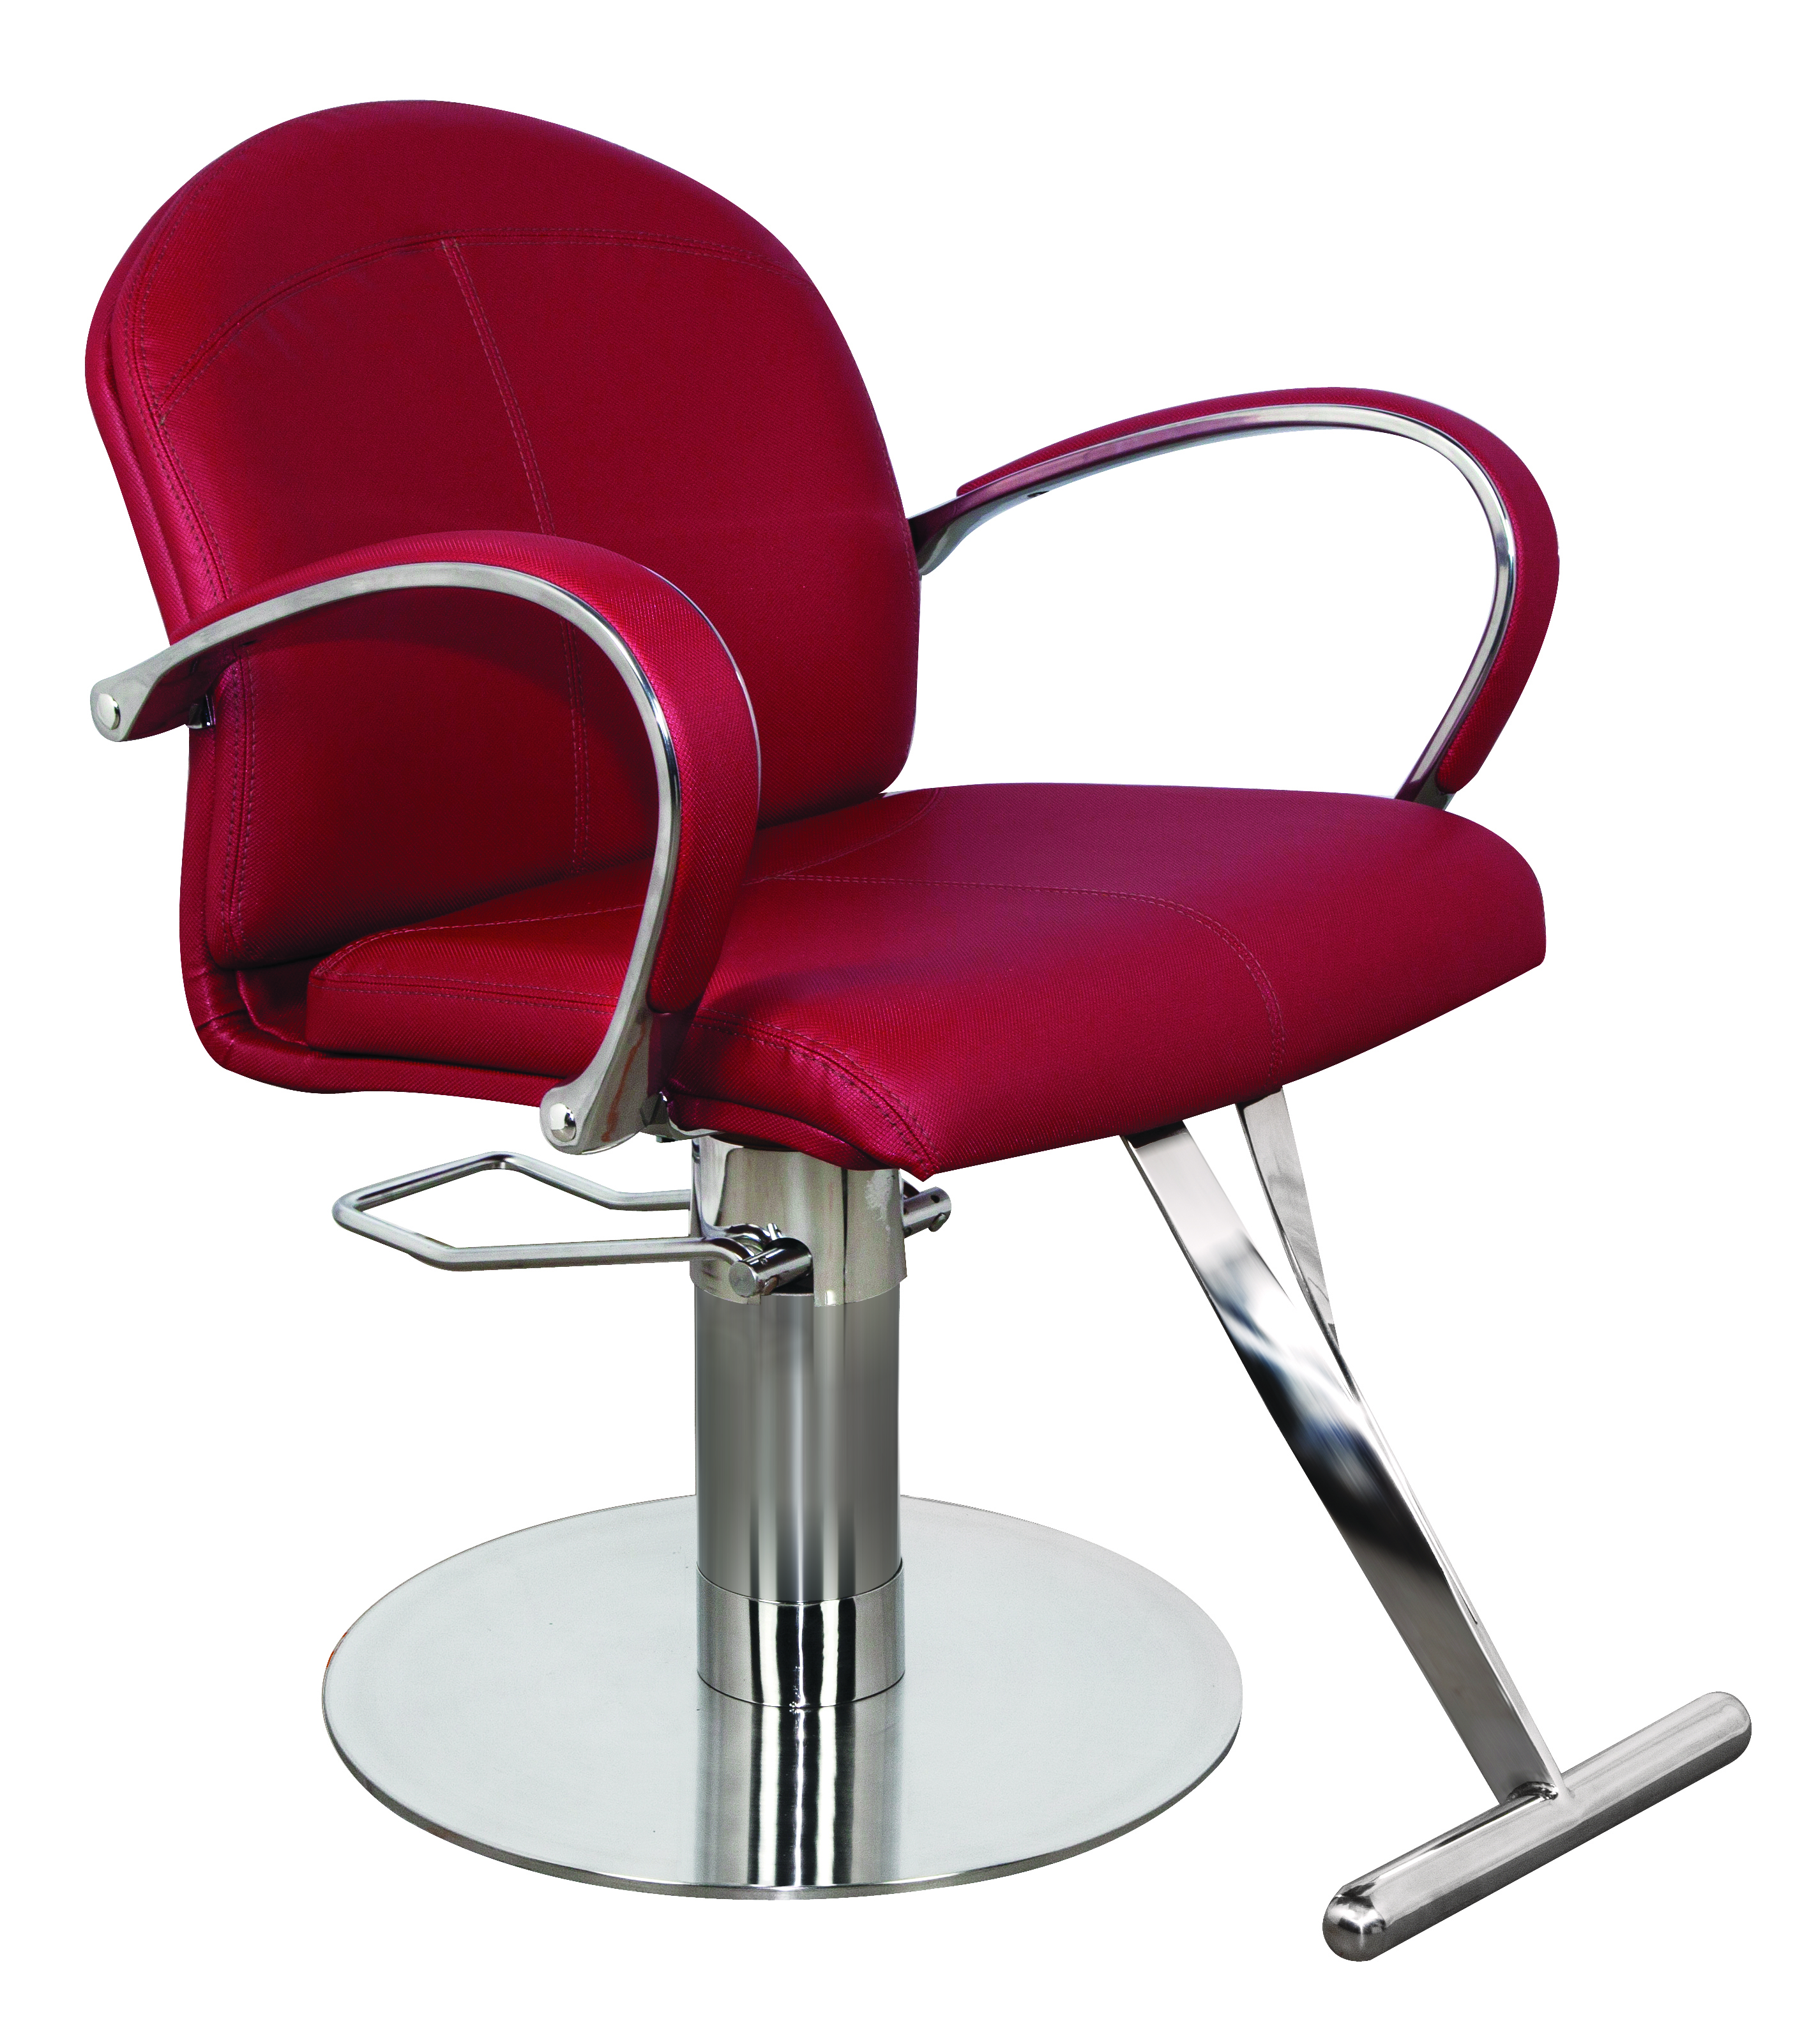 Giselle GL 60 Kaemark OWI Salon Styling Chair In 19 Colors Free